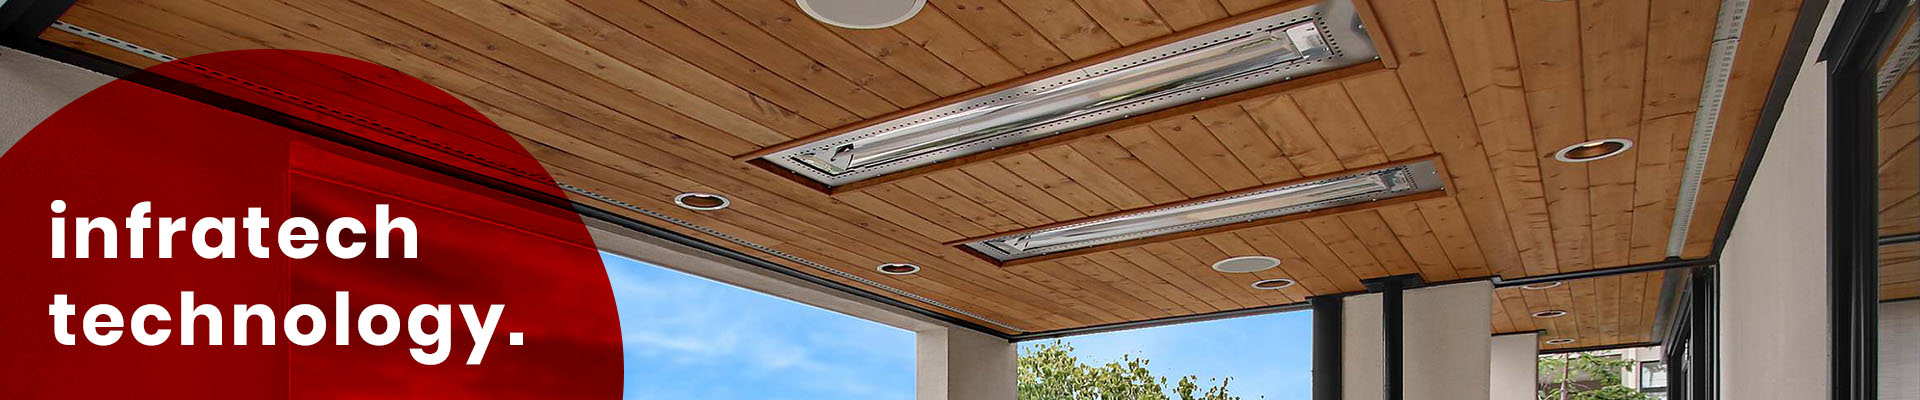 Infratech Heaters presents Outdoor Design Trends